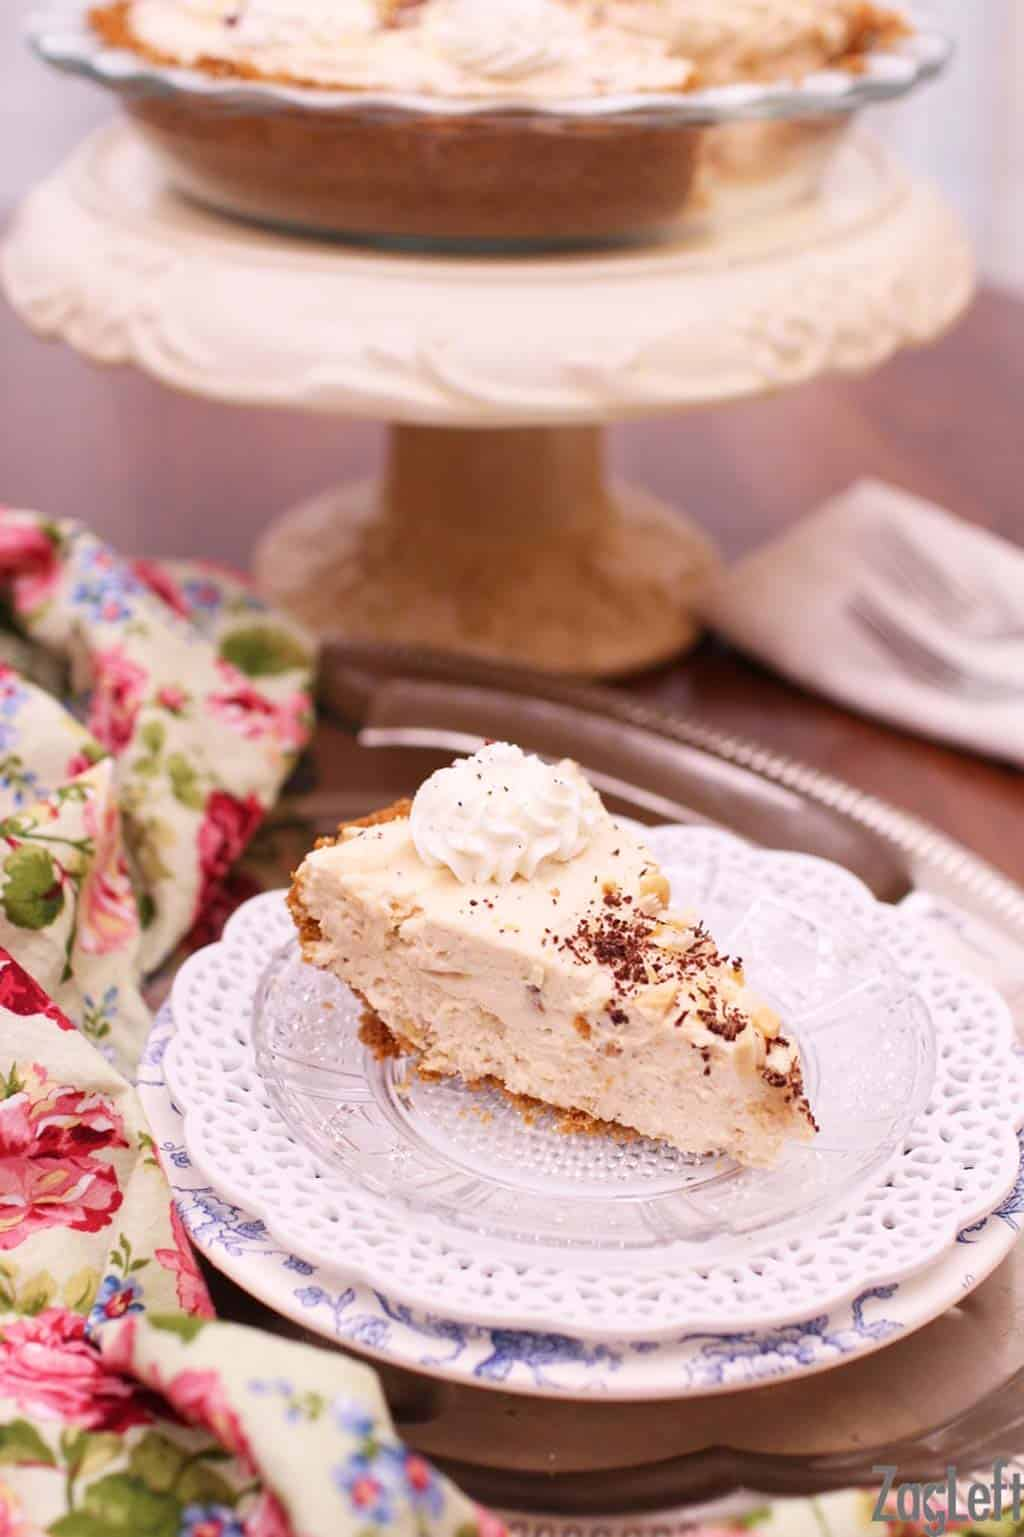 A slice of Peanut Butter Marshmallow Cream Pie topped with whipped cream and chocolate shavings plated on a metal tray with a floral cloth napkin and the remainder of the pie on a cake stand in the background